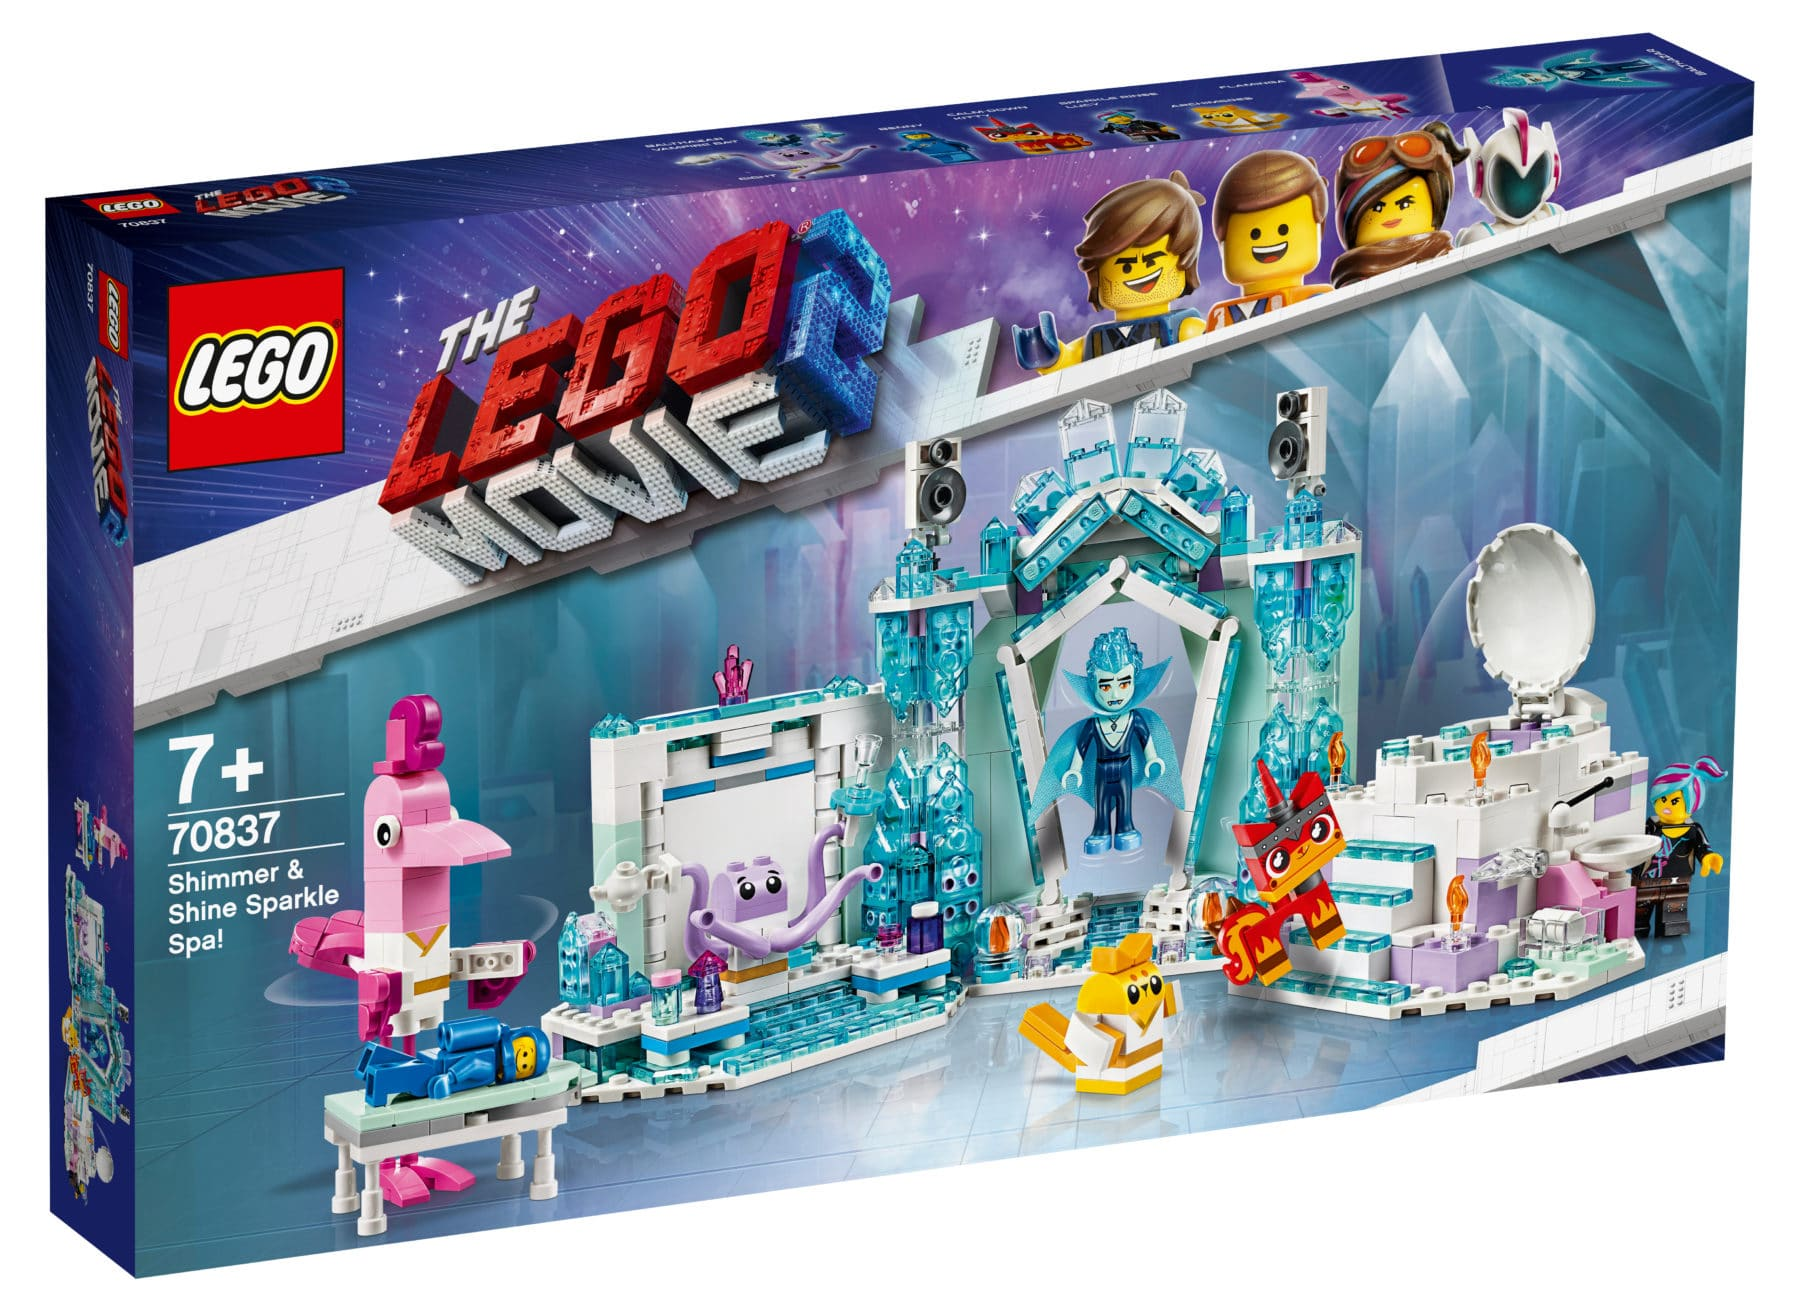 LEGO 70837 Shimmer & Shine Sparkle Spa